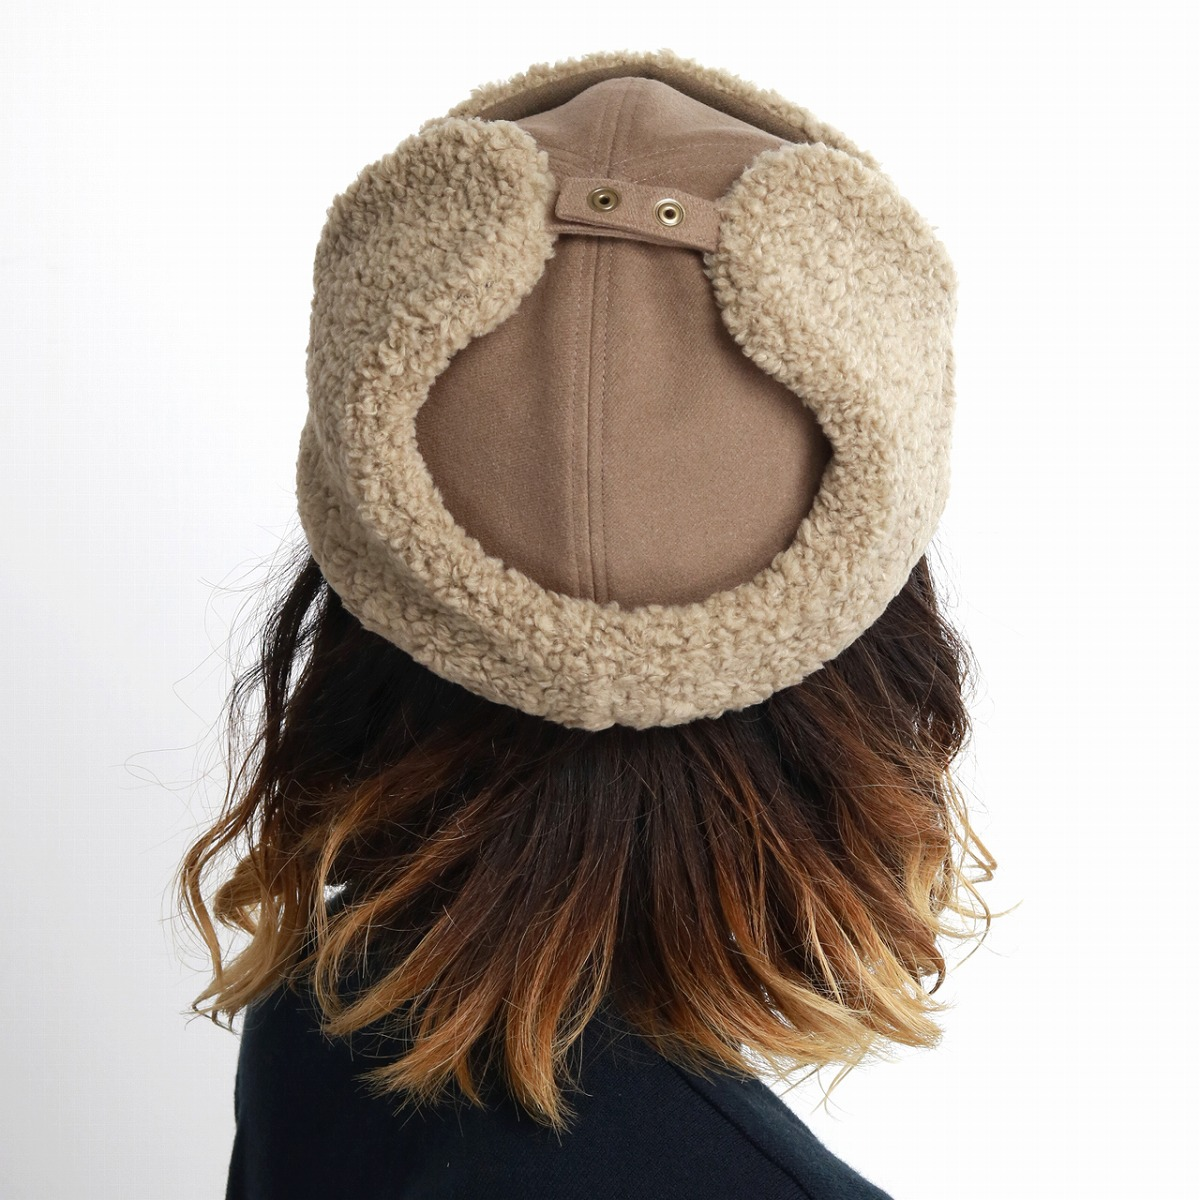 30b8733aad3 The earmuffs are the pretty finish with full of senses of the seasons in  soft and fluffy large drop of boas. The one that got into a rut for  coordinates ...